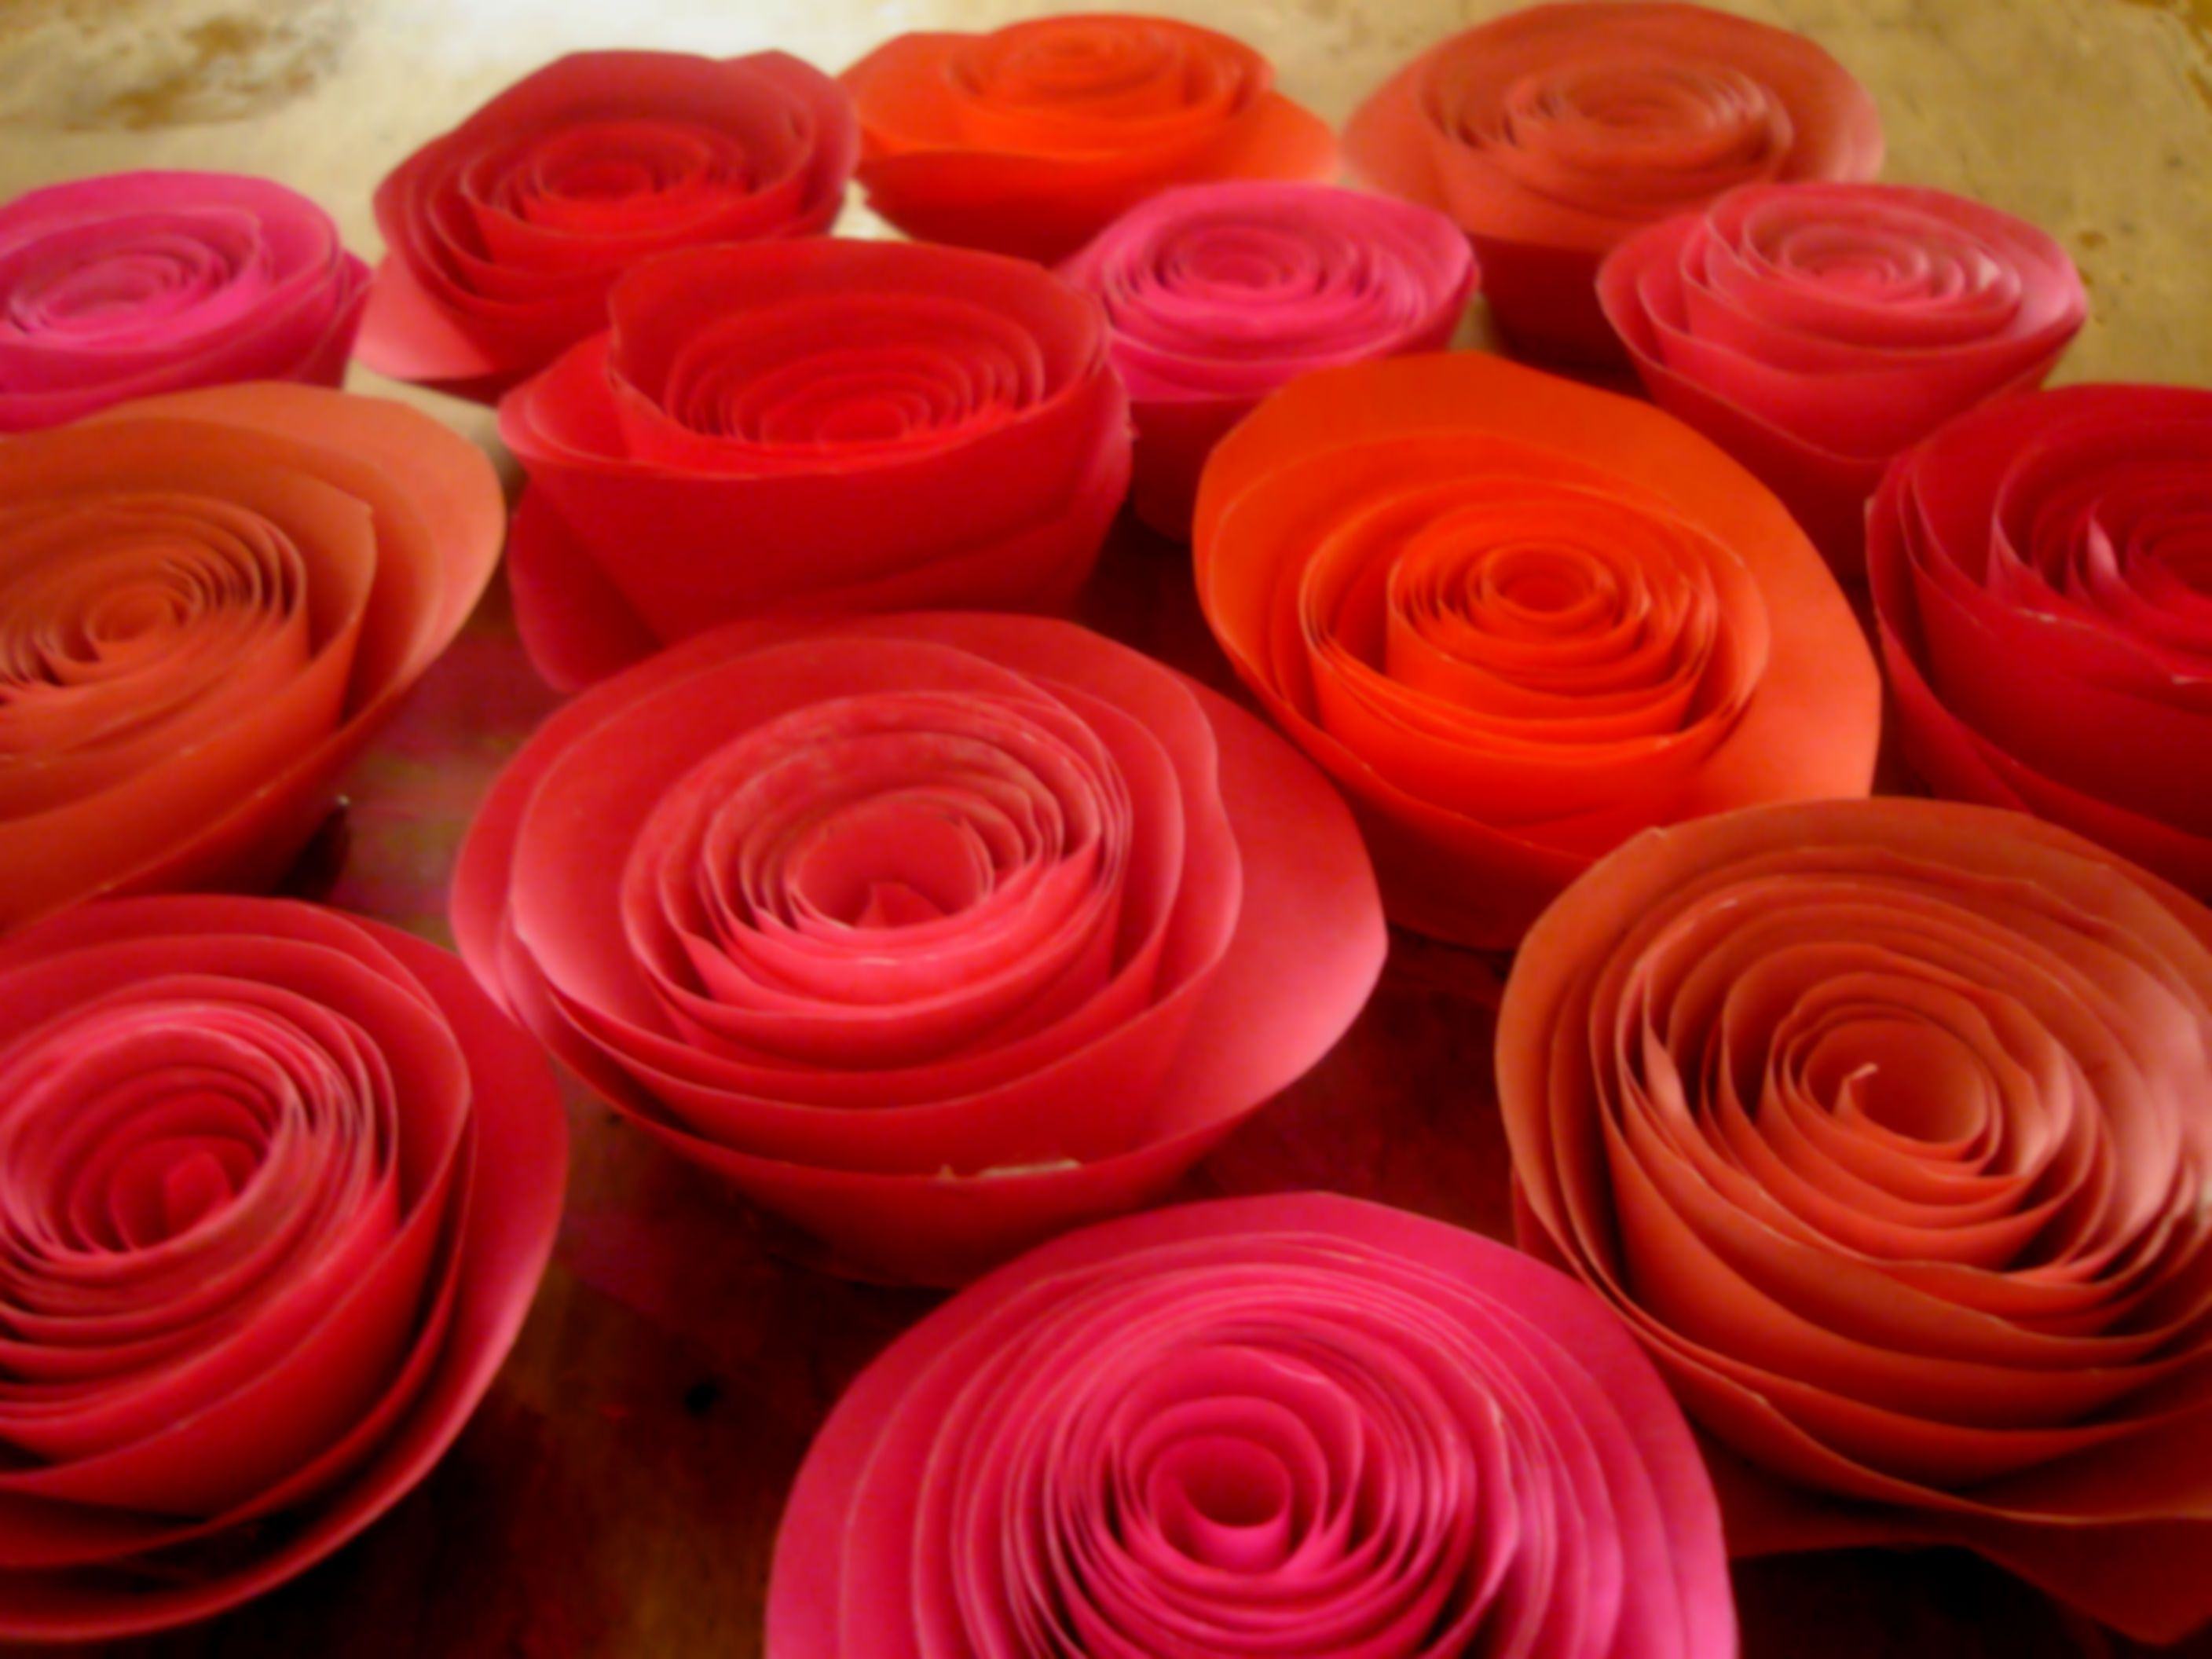 How To Make Paper Roses Paper Roses Printer Paper And Glue Sticks